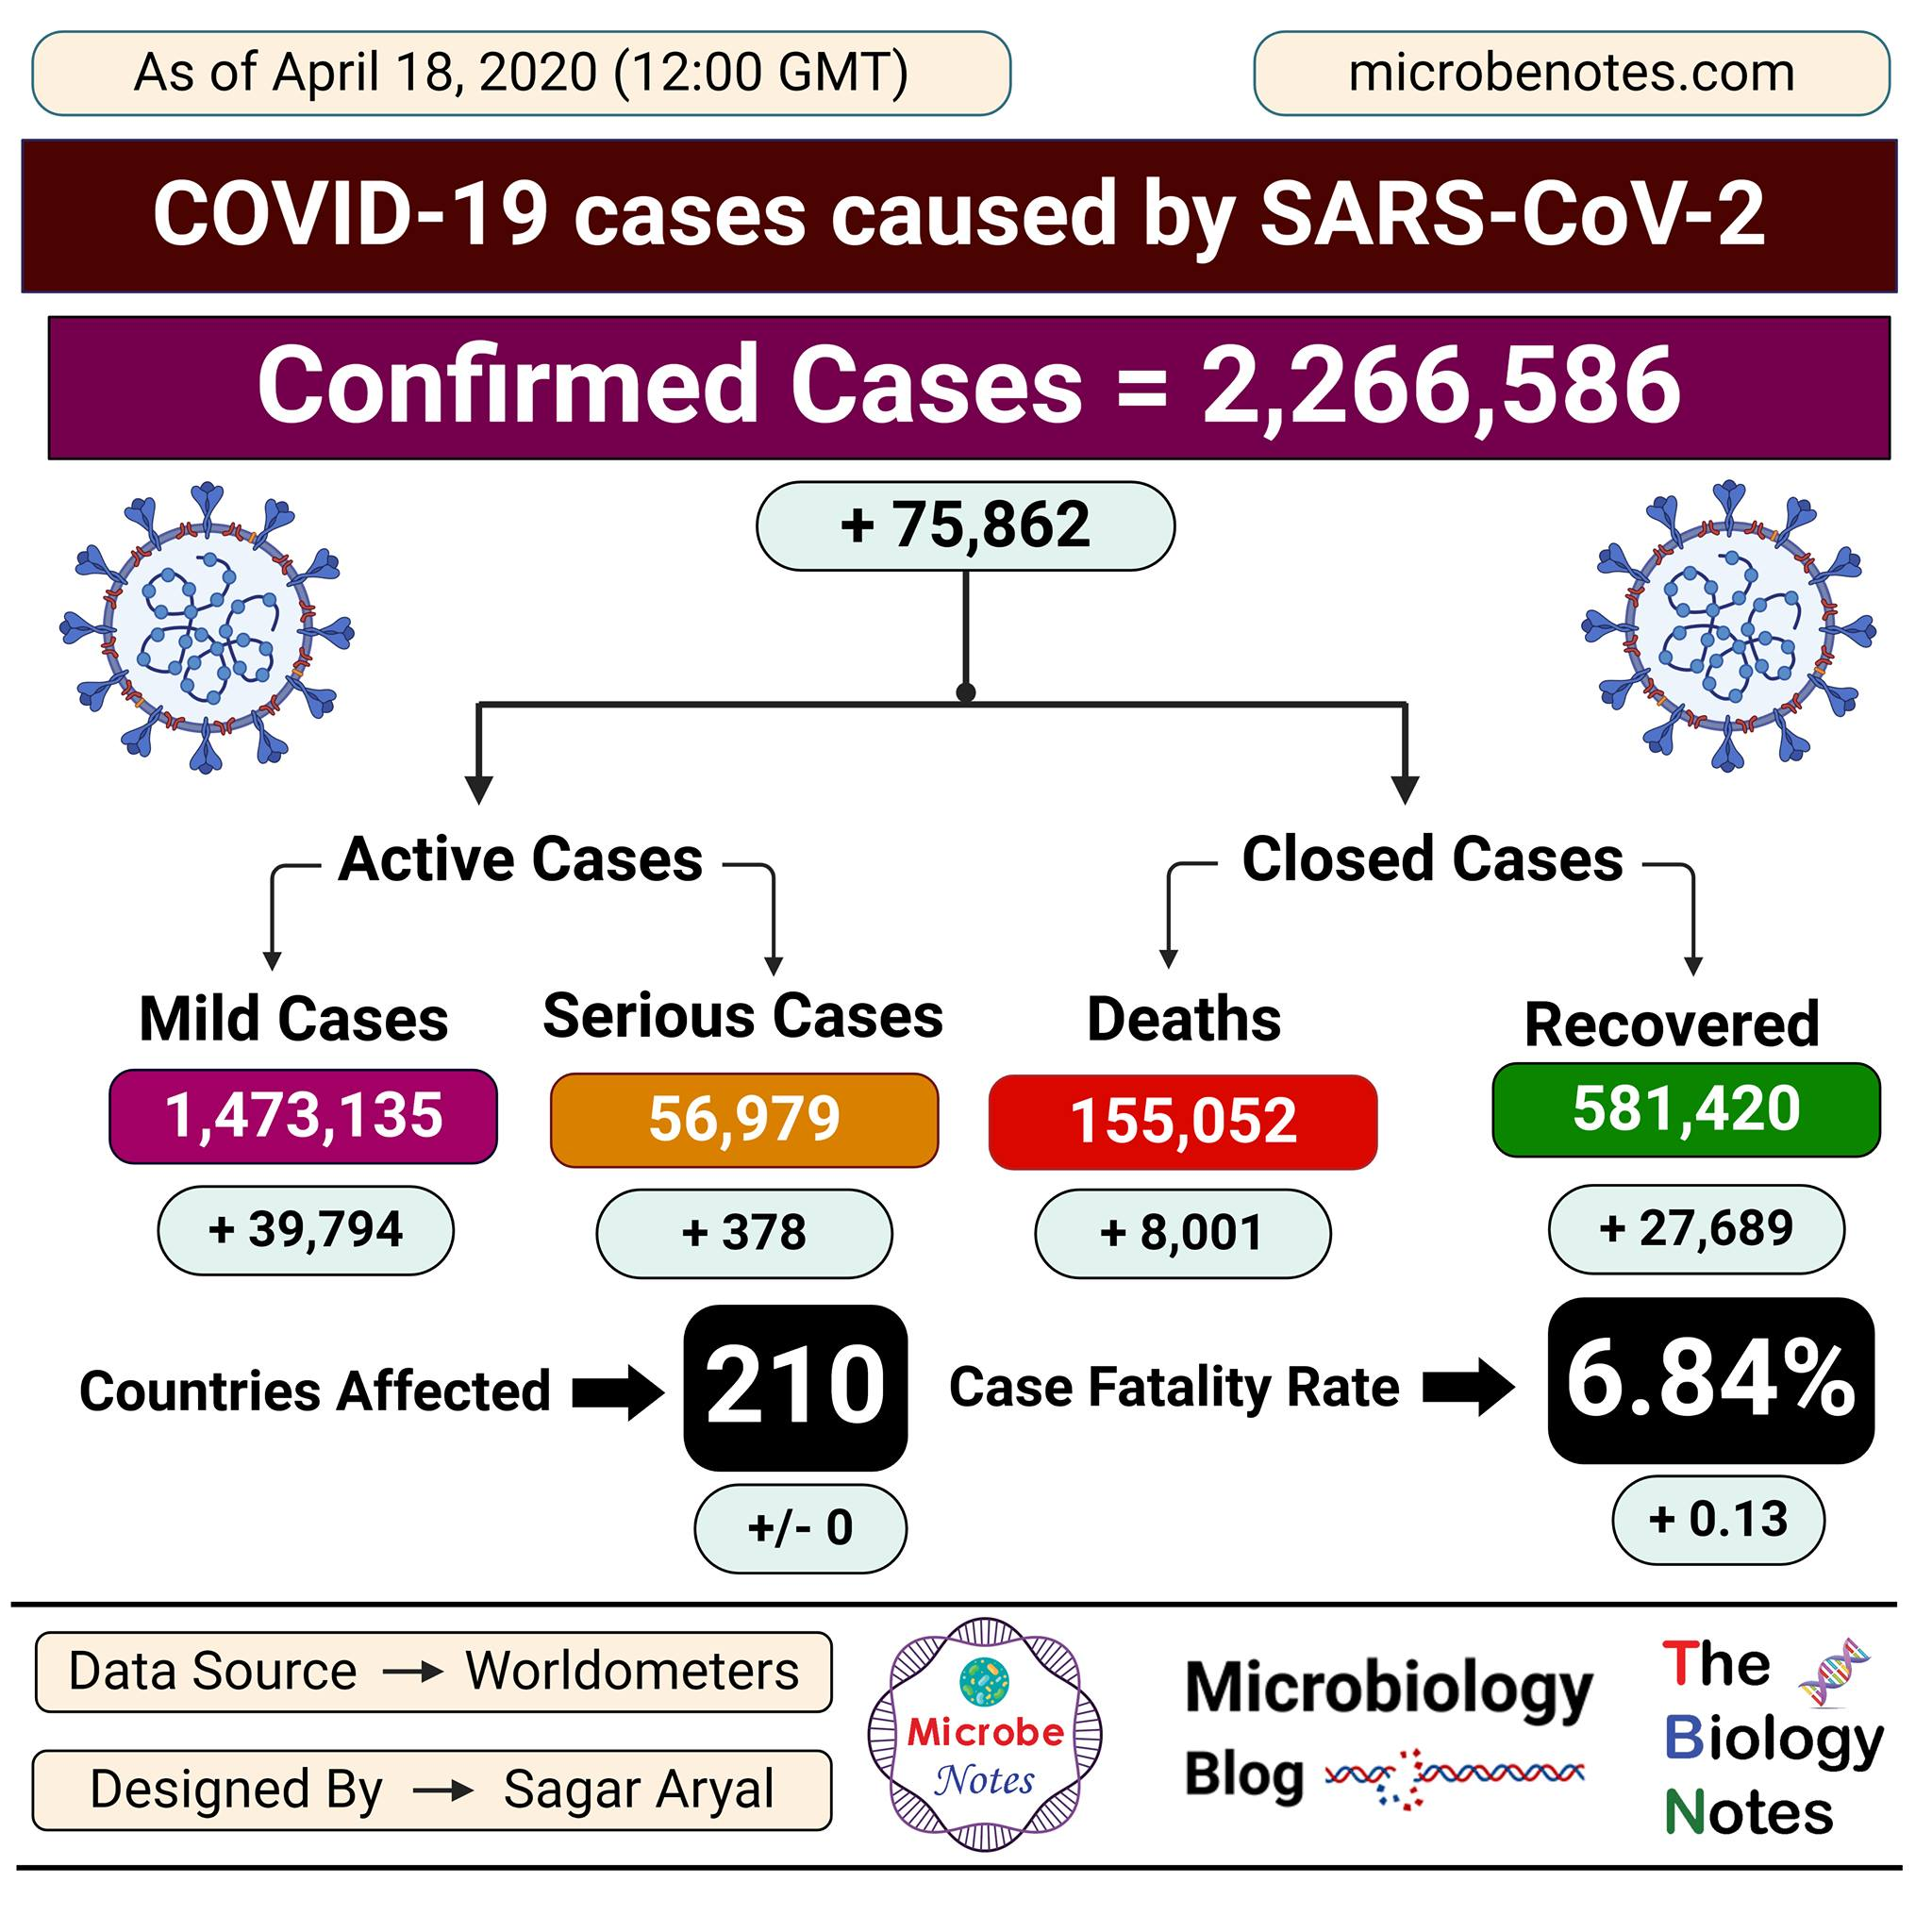 Epidemiology of COVID-19 caused by SARS-CoV-2 as of April 18, 2020